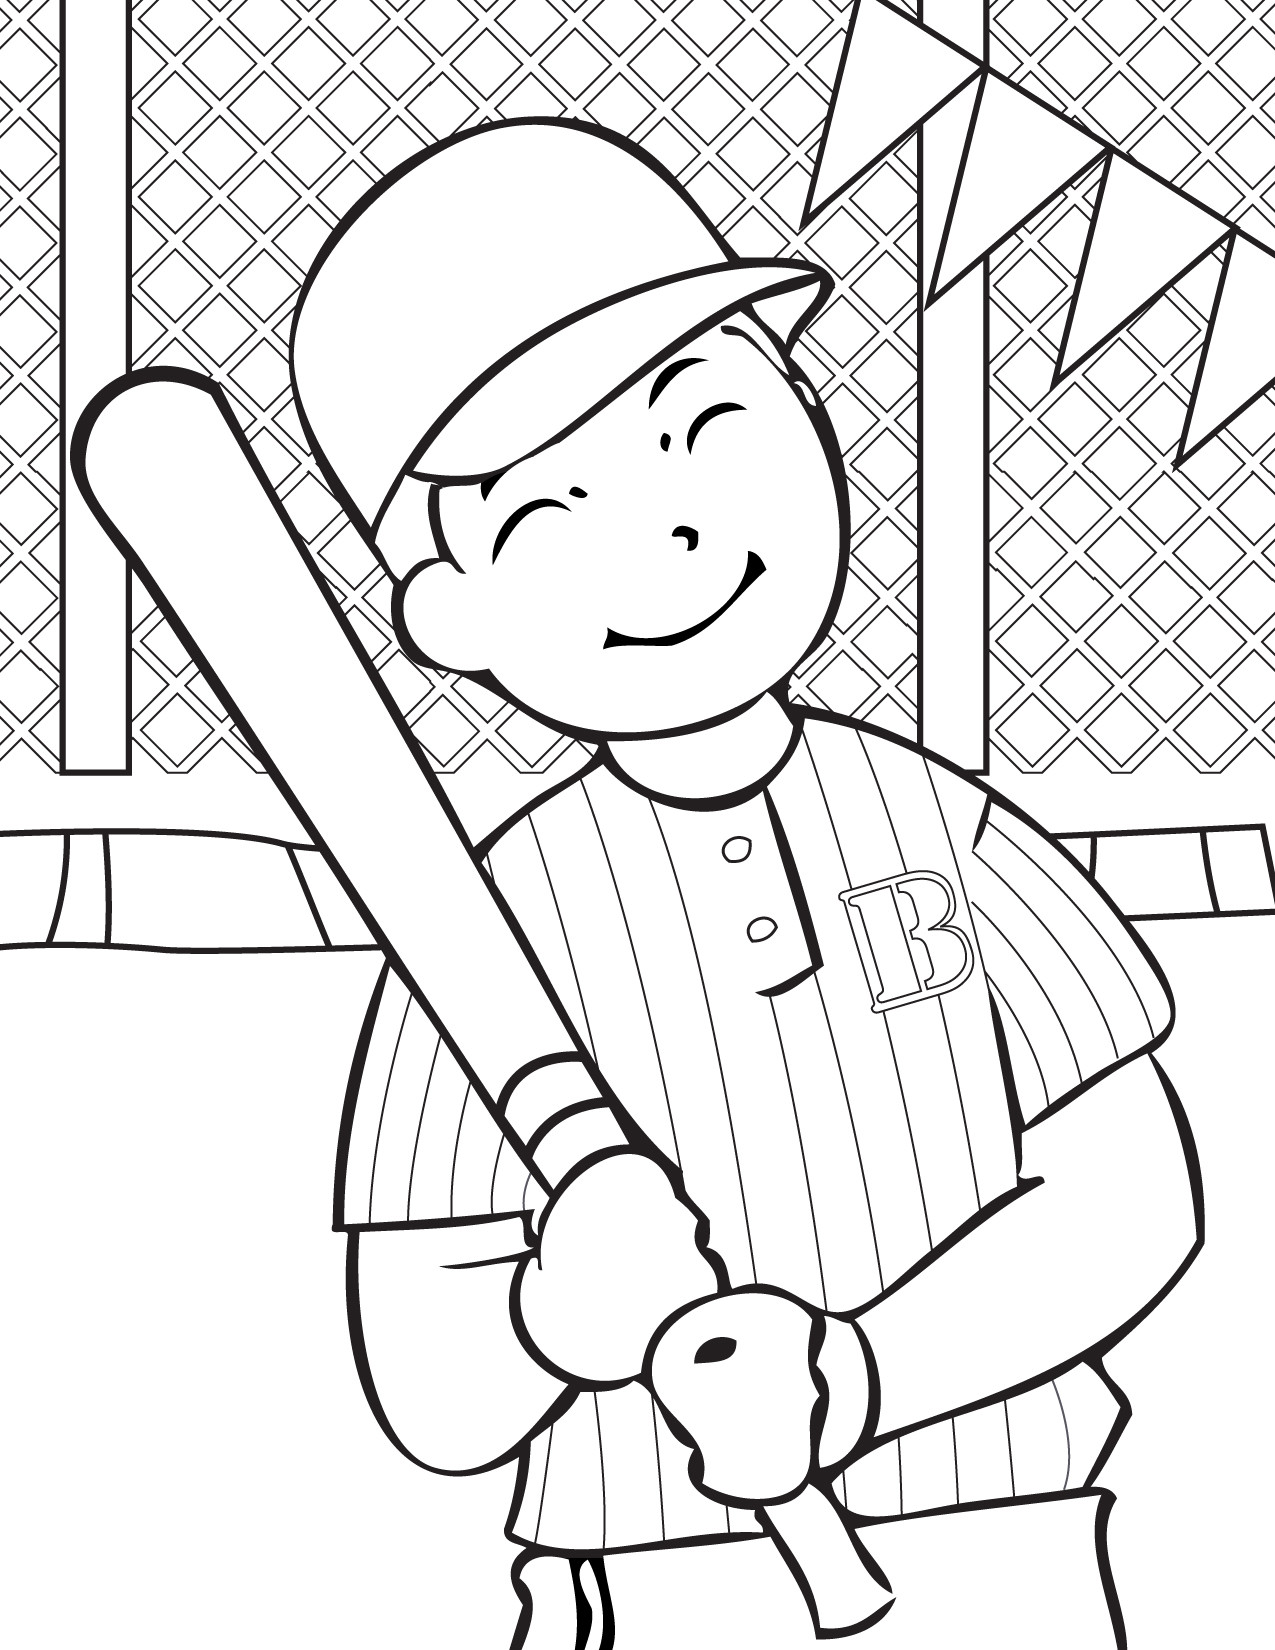 Free Coloring Pages Sports  Free Printable Baseball Coloring Pages for Kids Best